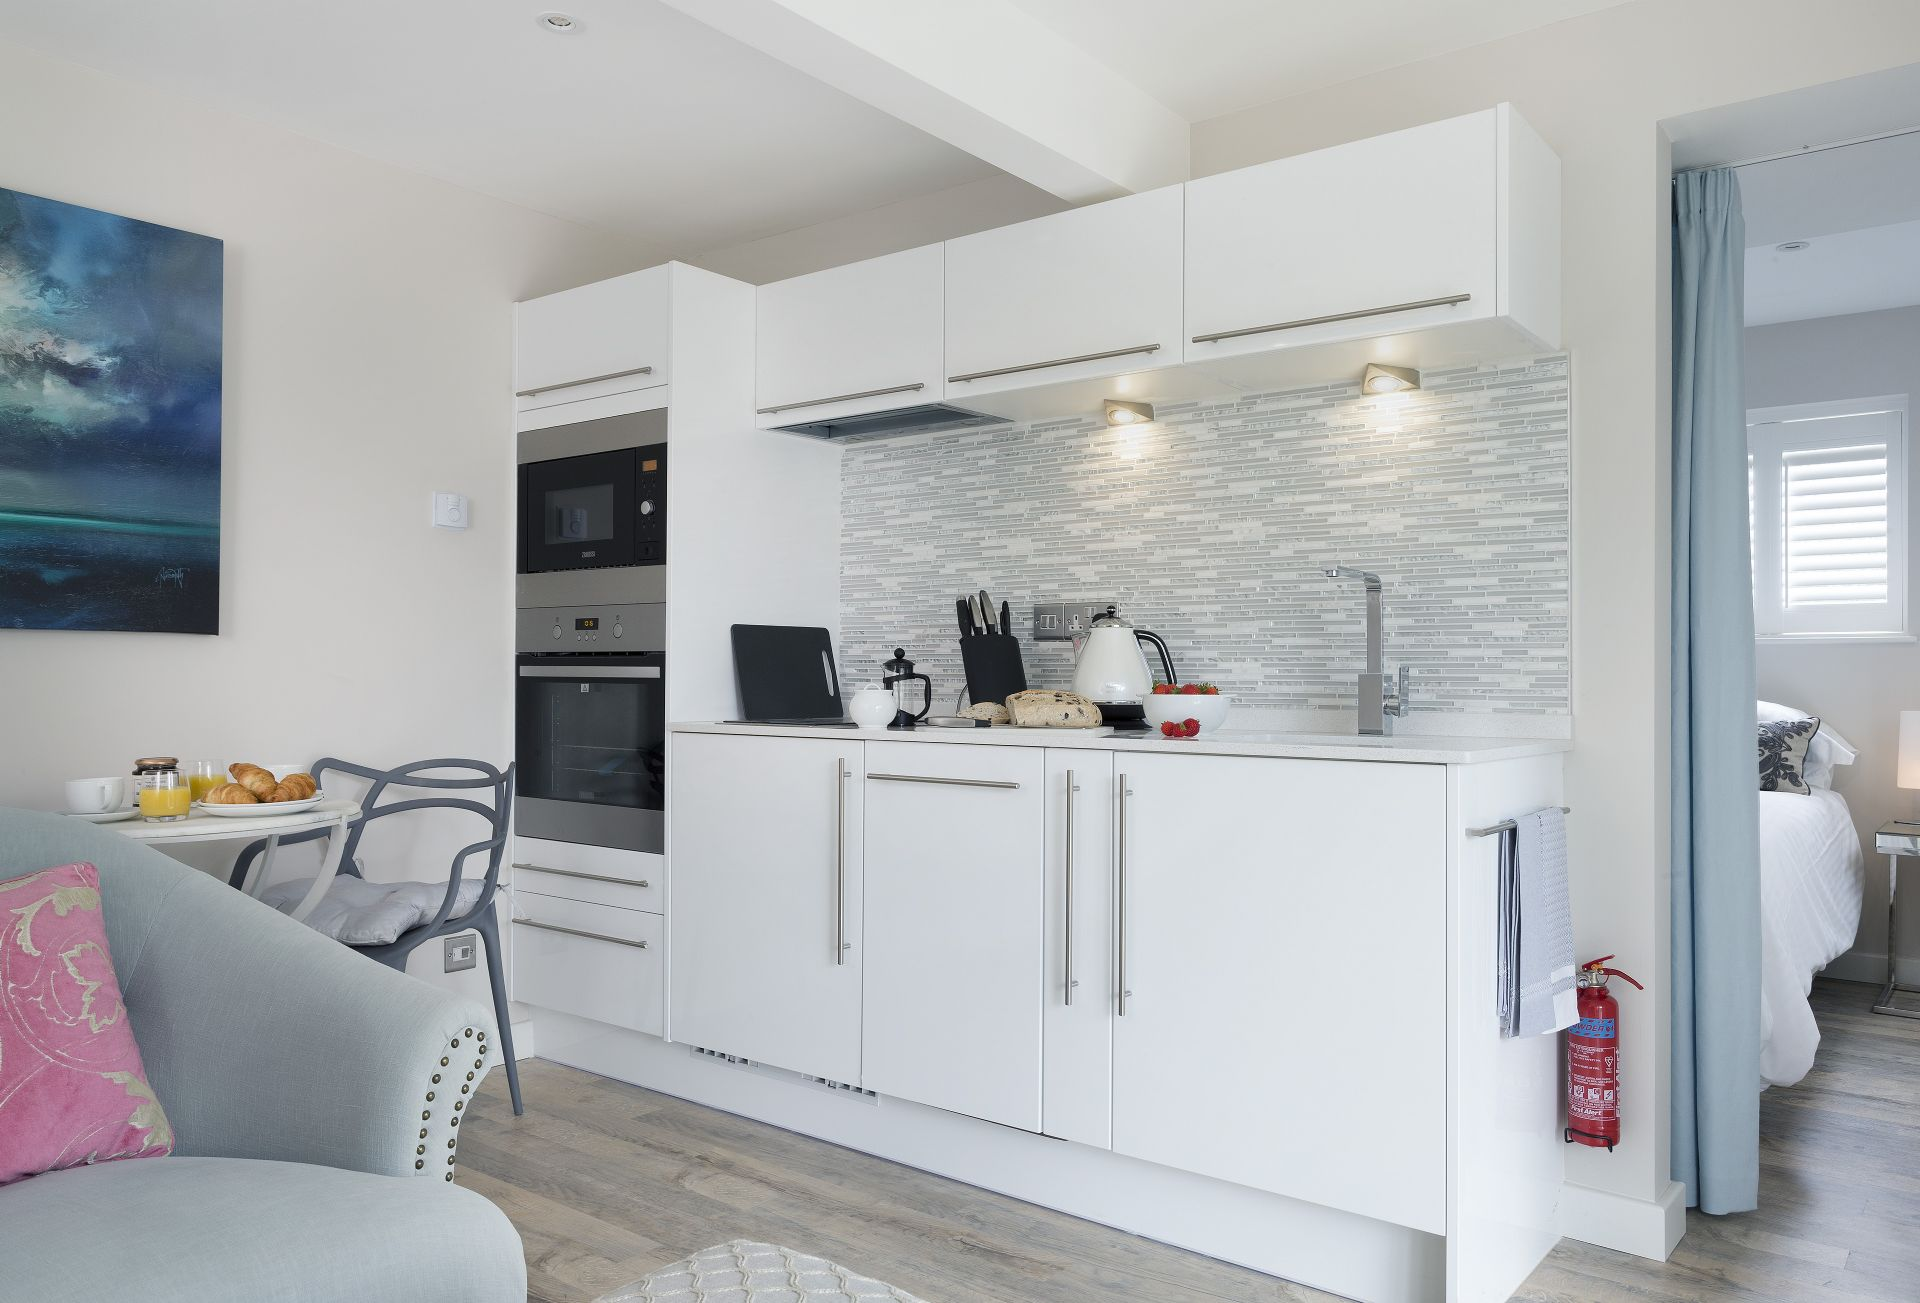 Ground floor: Open-plan living area with kitchen, dining table for two and sitting area